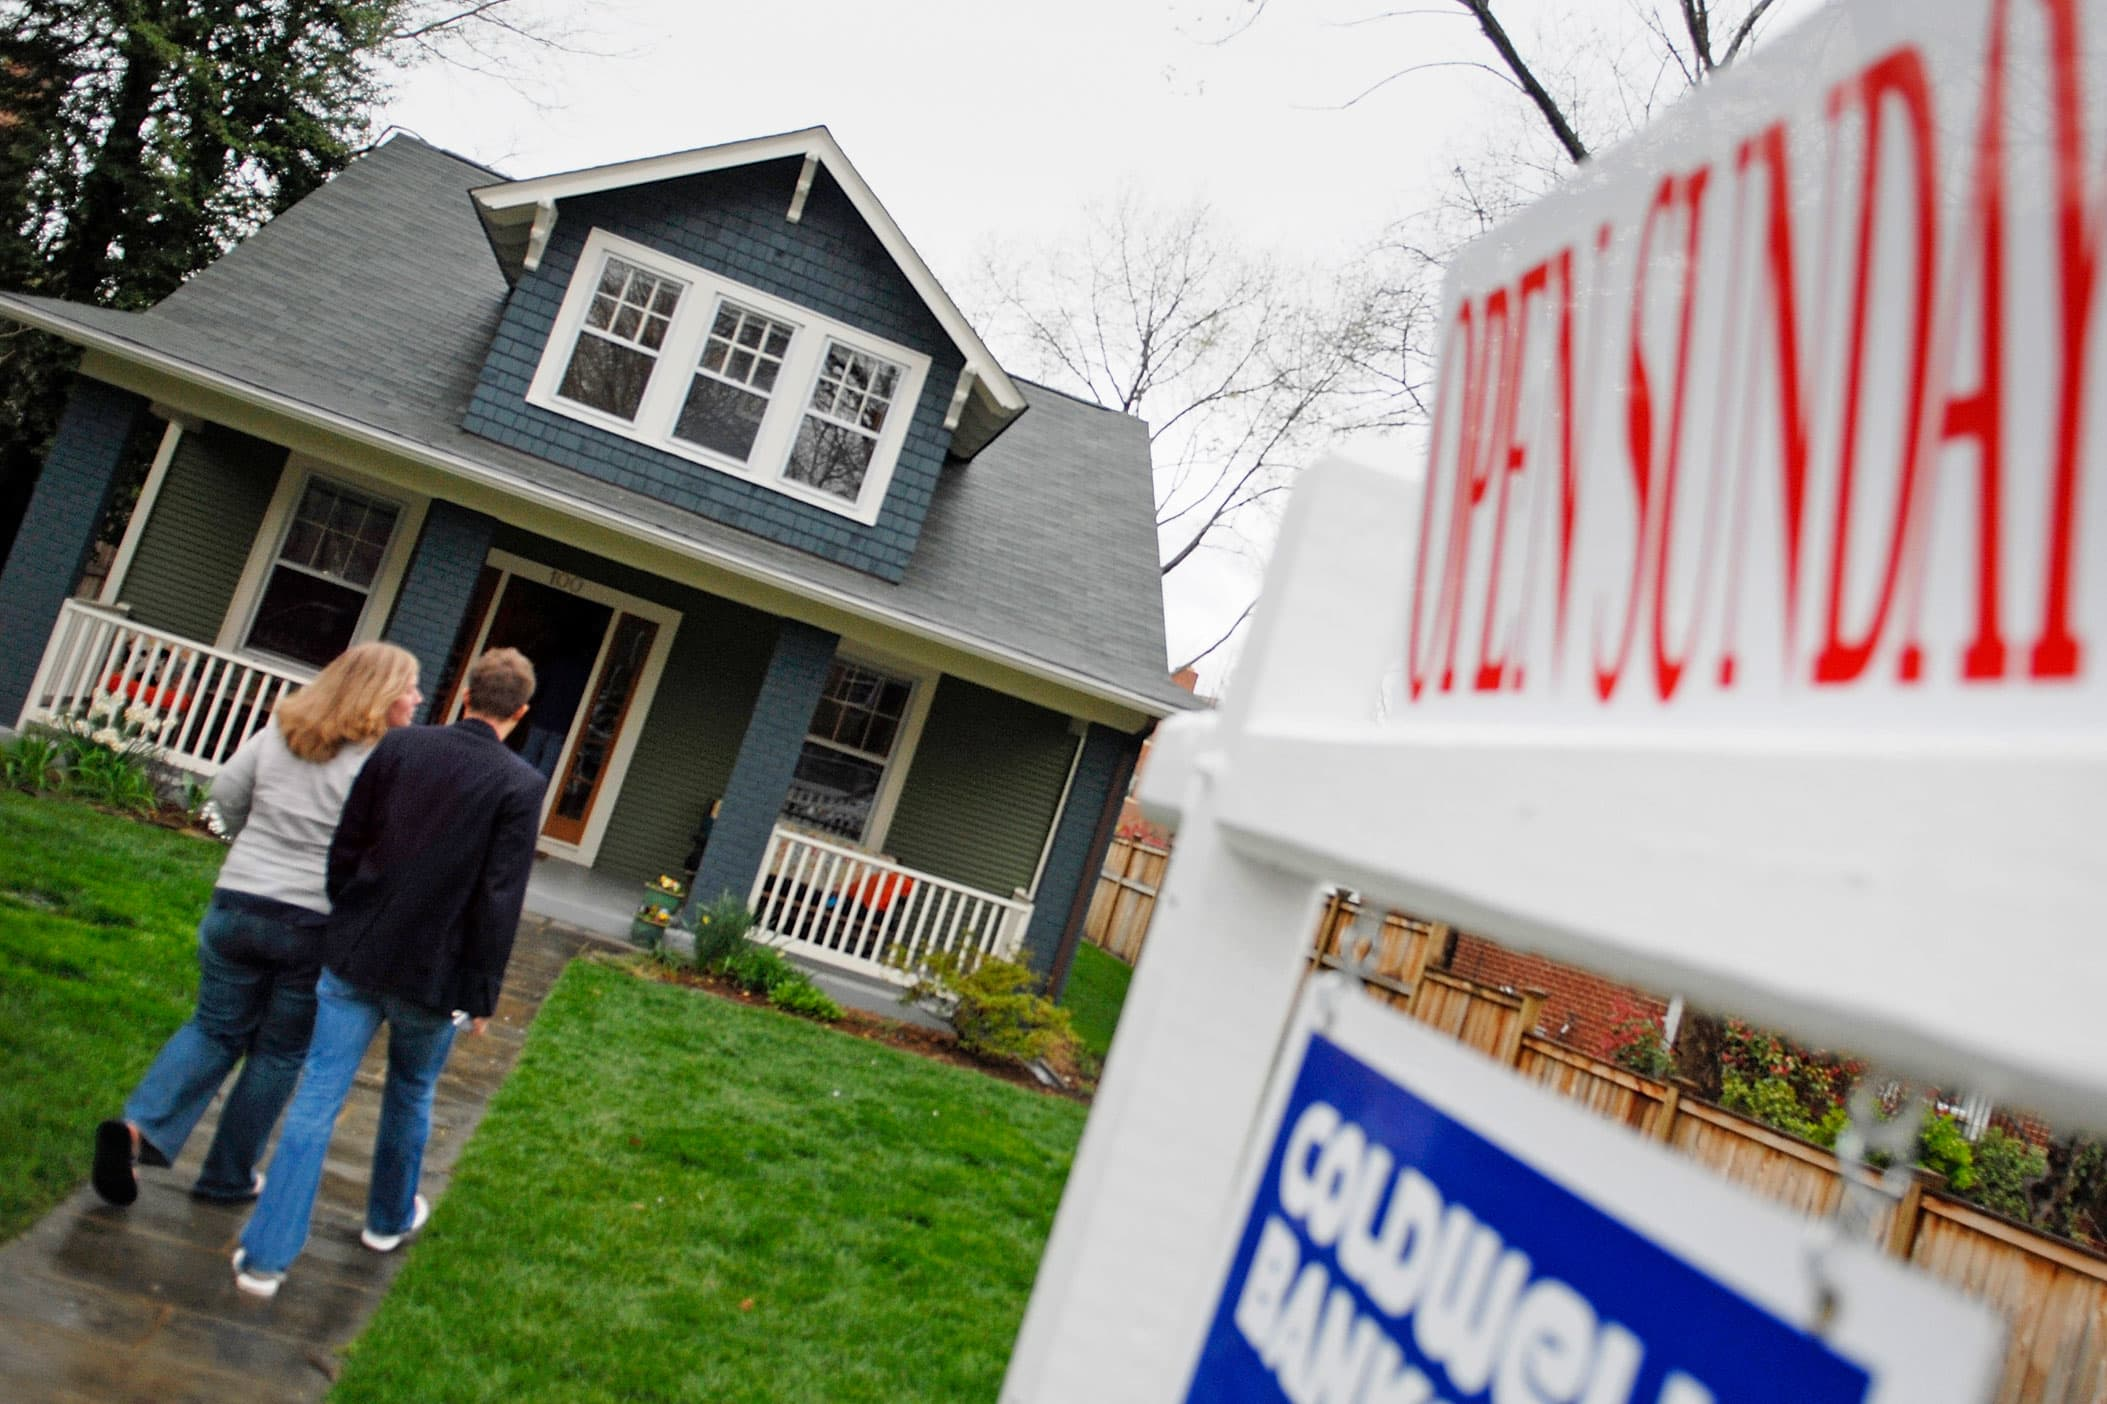 Mortgage rates set another record low